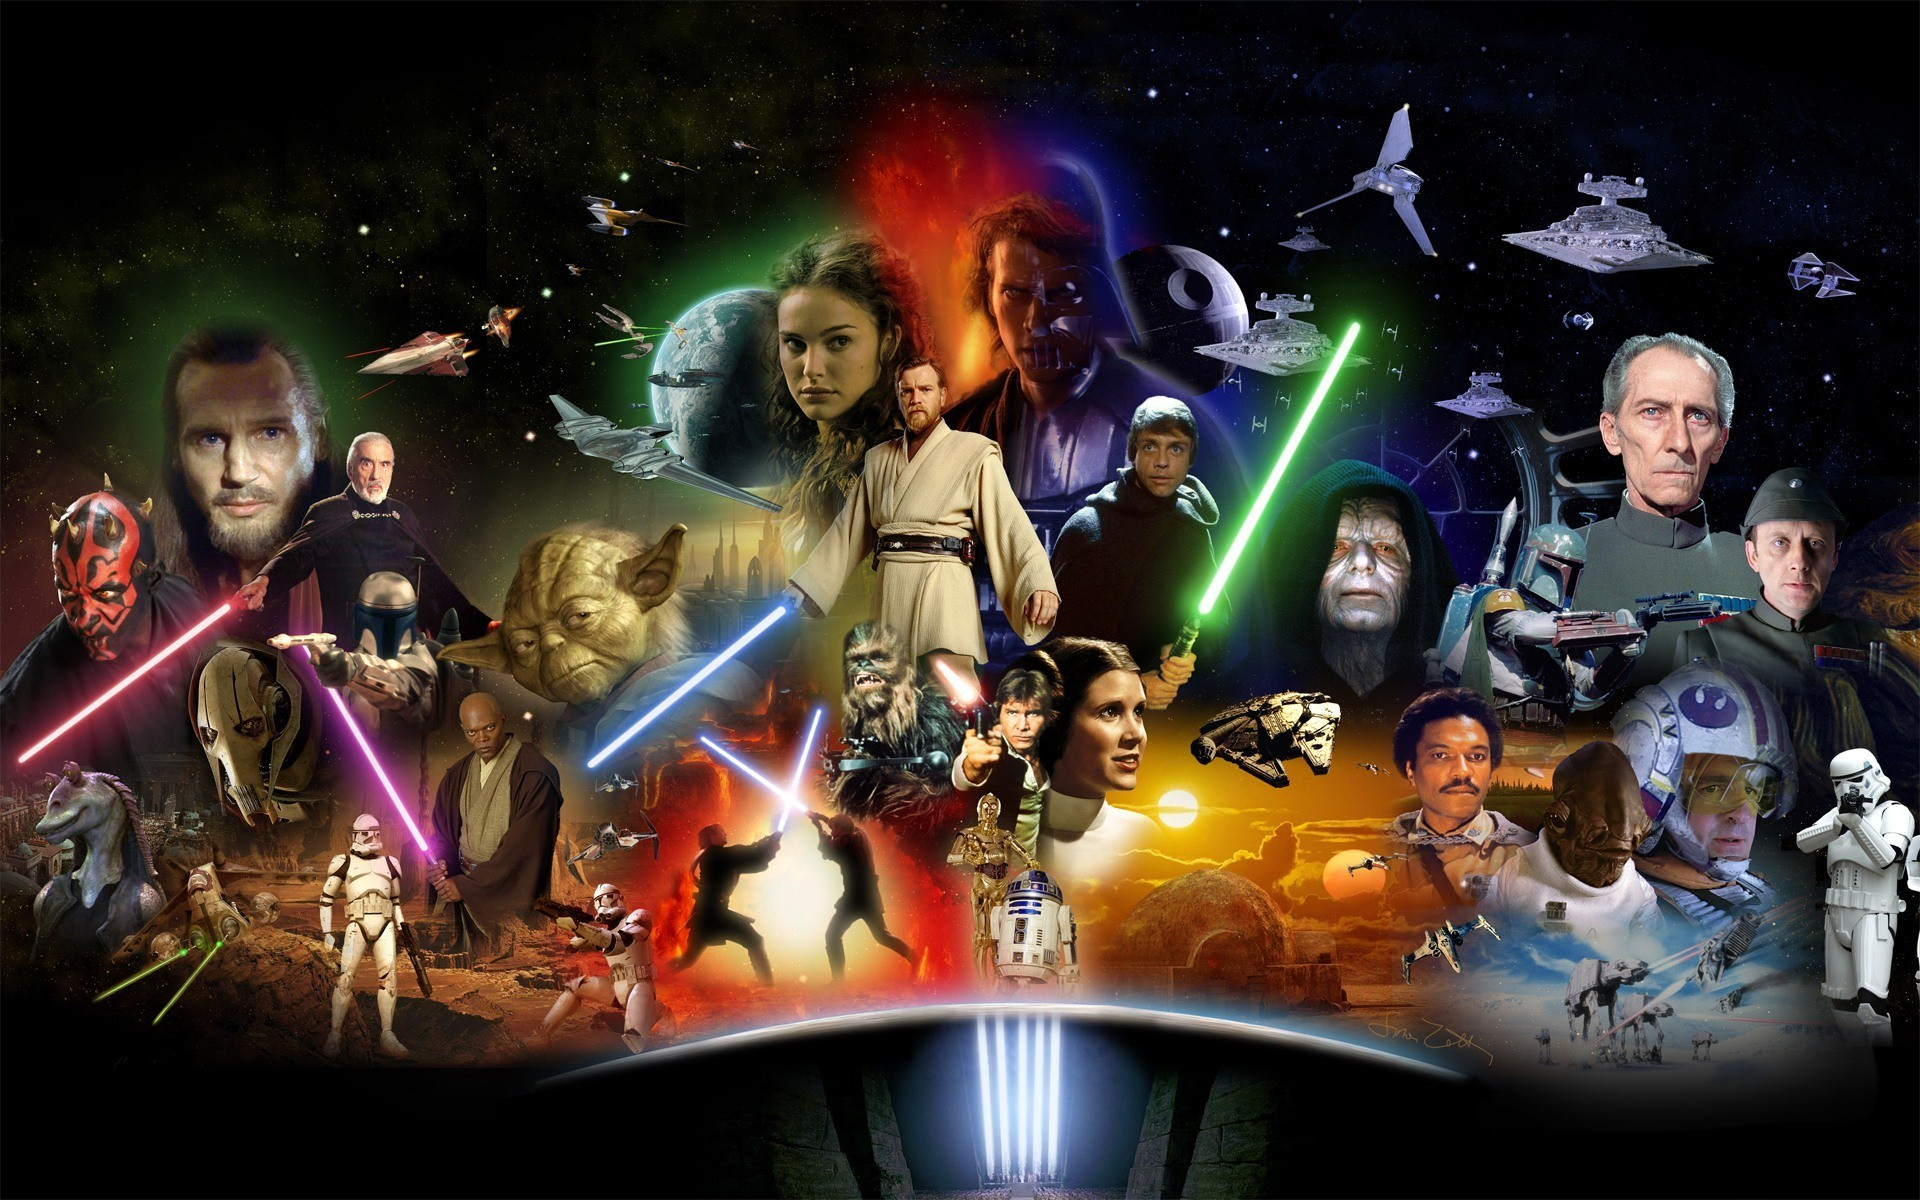 star-wars-wallpaper-original-199460.jpg